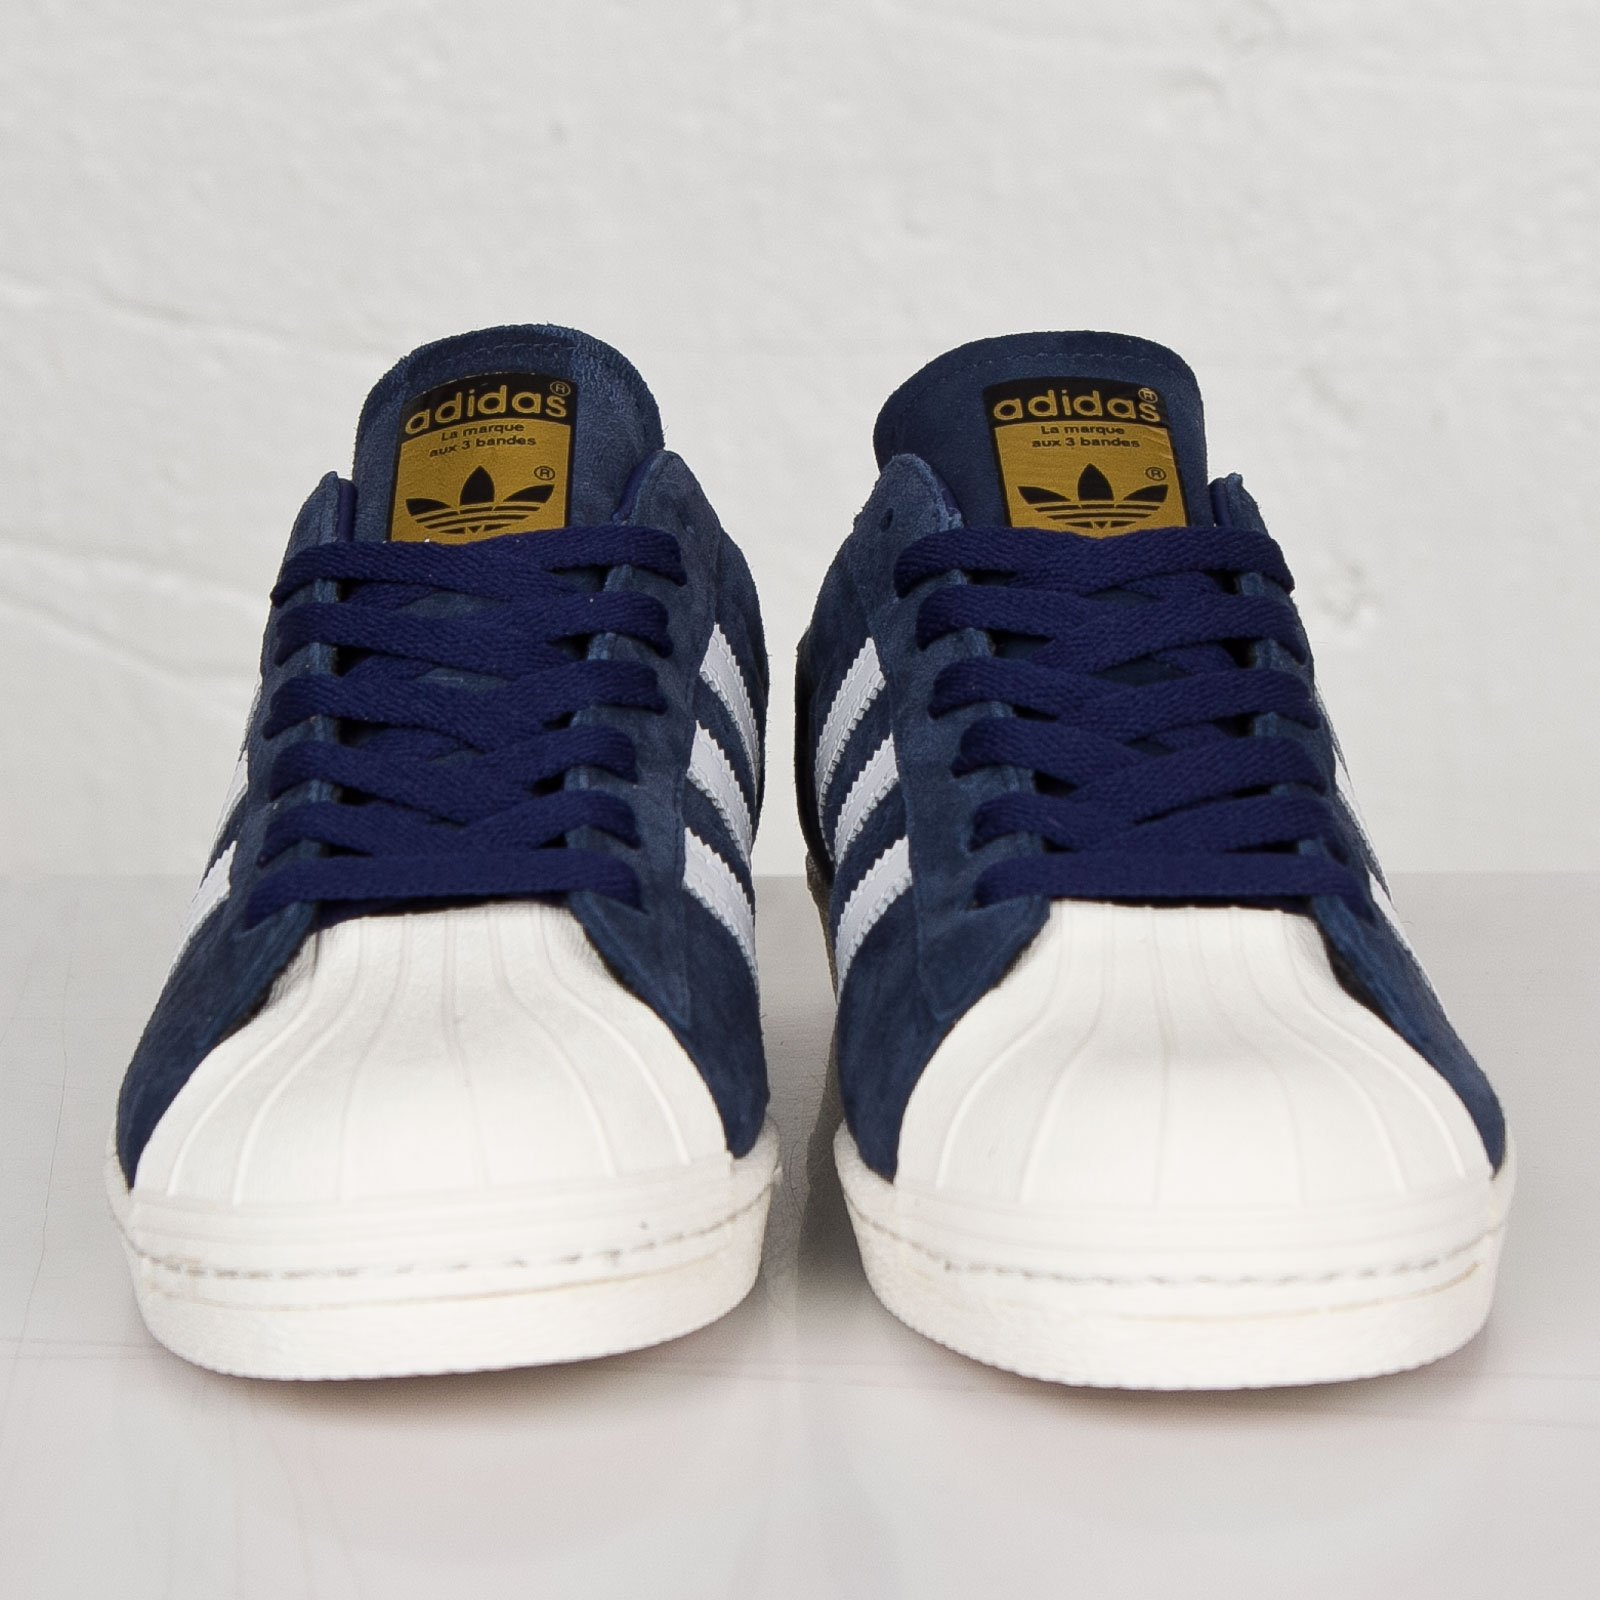 the latest 7f46c 23aee adidas Superstar 80s Deluxe Suede adidas Superstar 80s Deluxe Suede ...